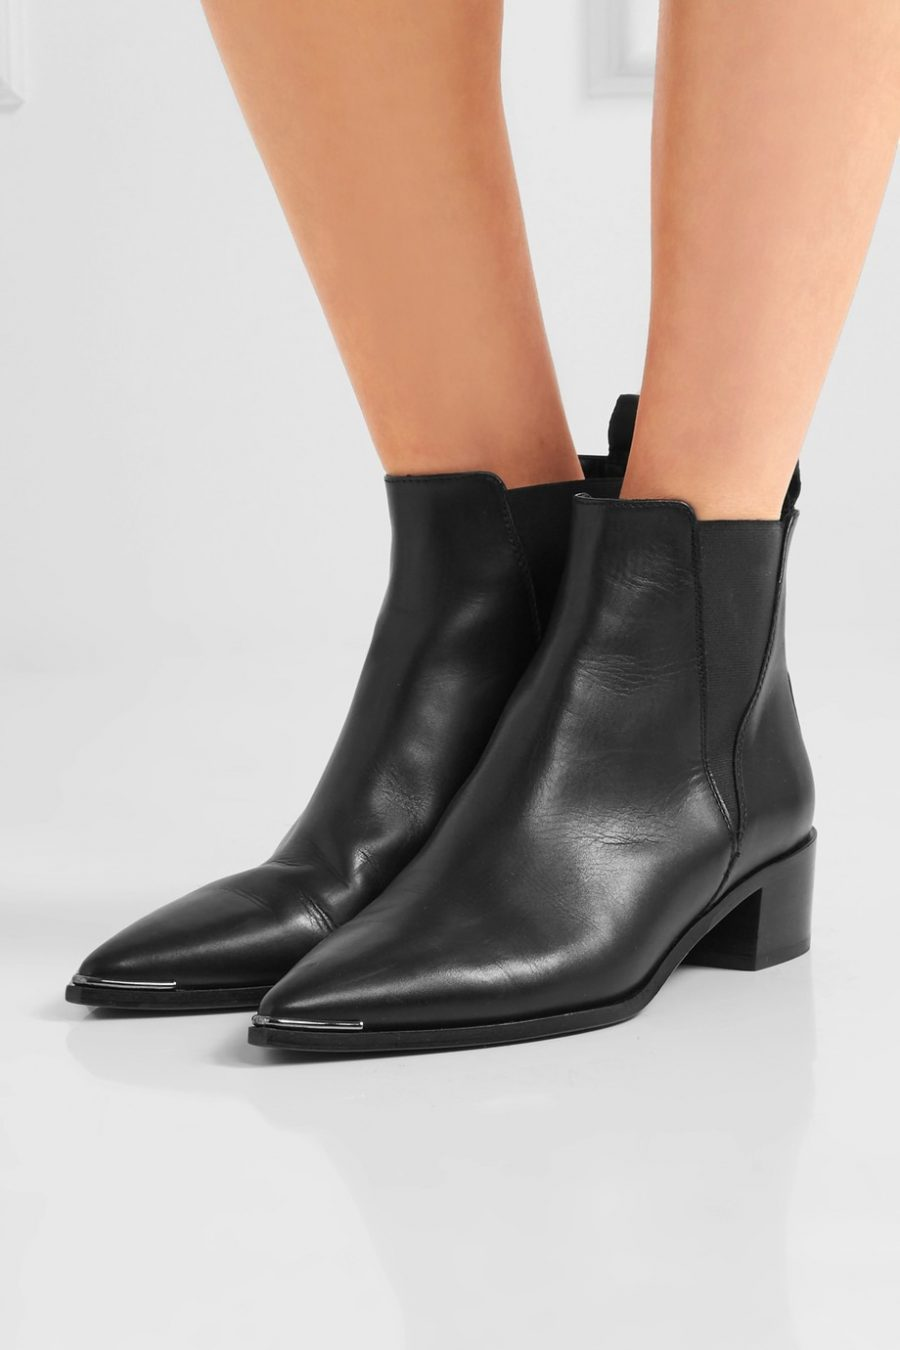 See Need Want Mothers Day Gift Guide Acne Studios Jensen Boots 1